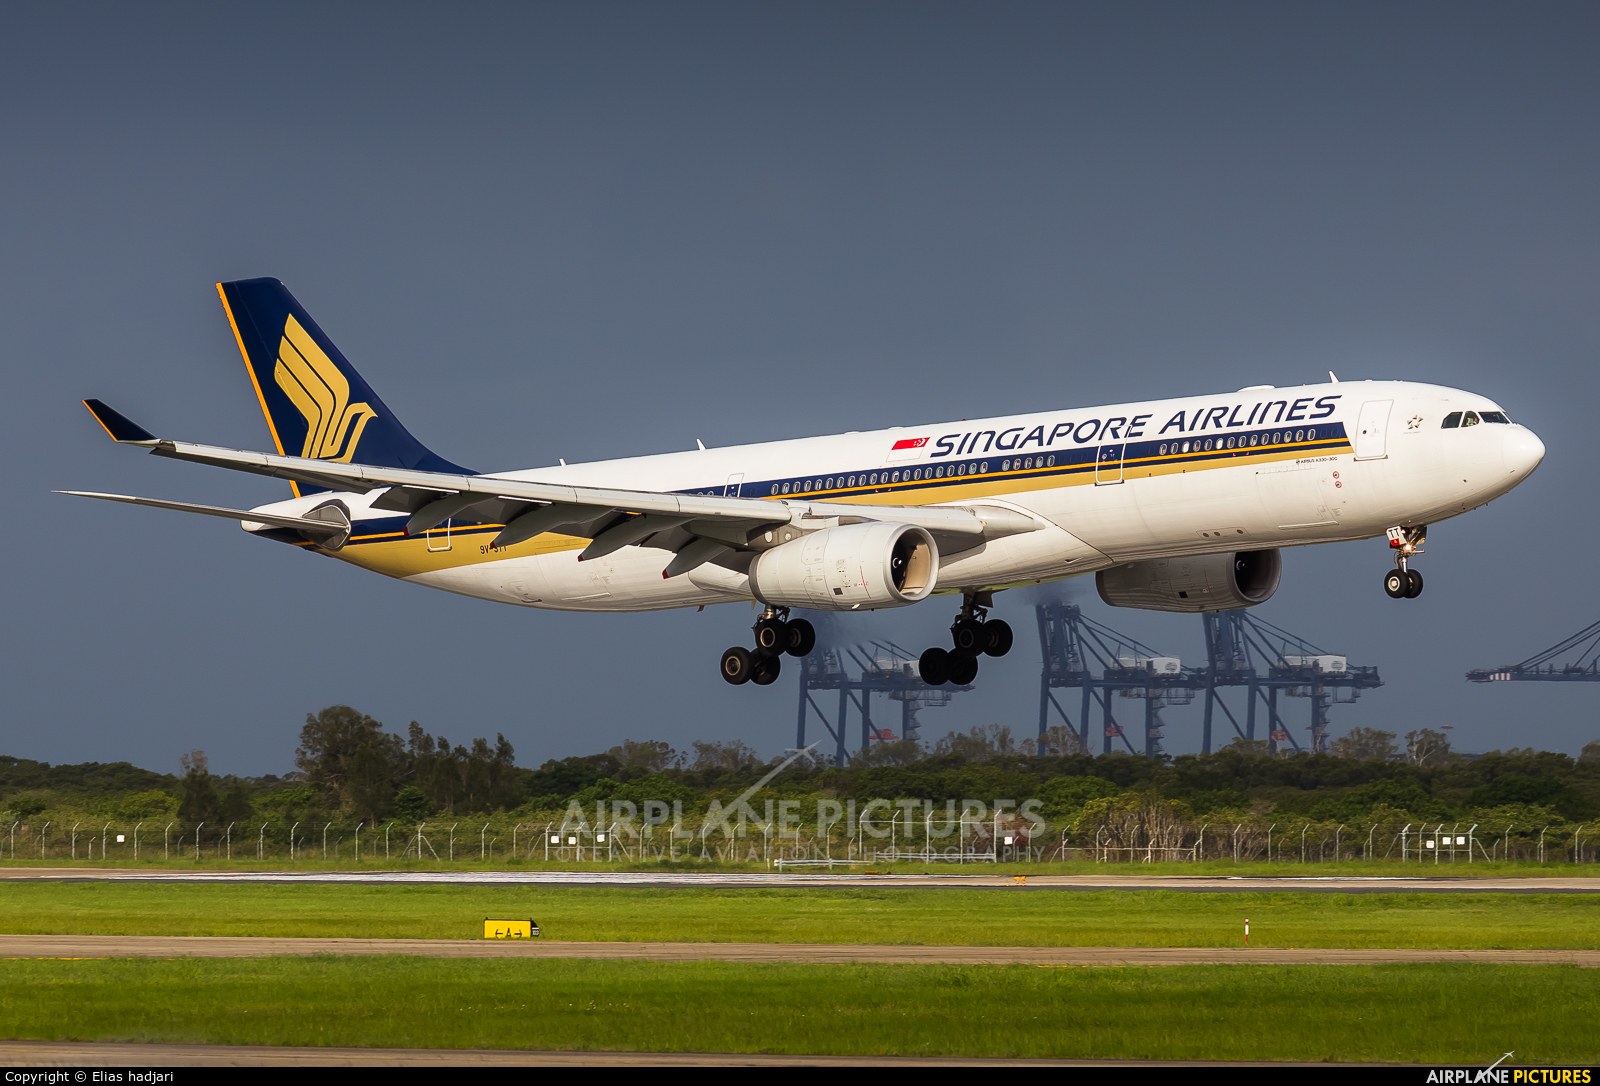 Singapore Airlines 9V-STT aircraft at Brisbane, QLD